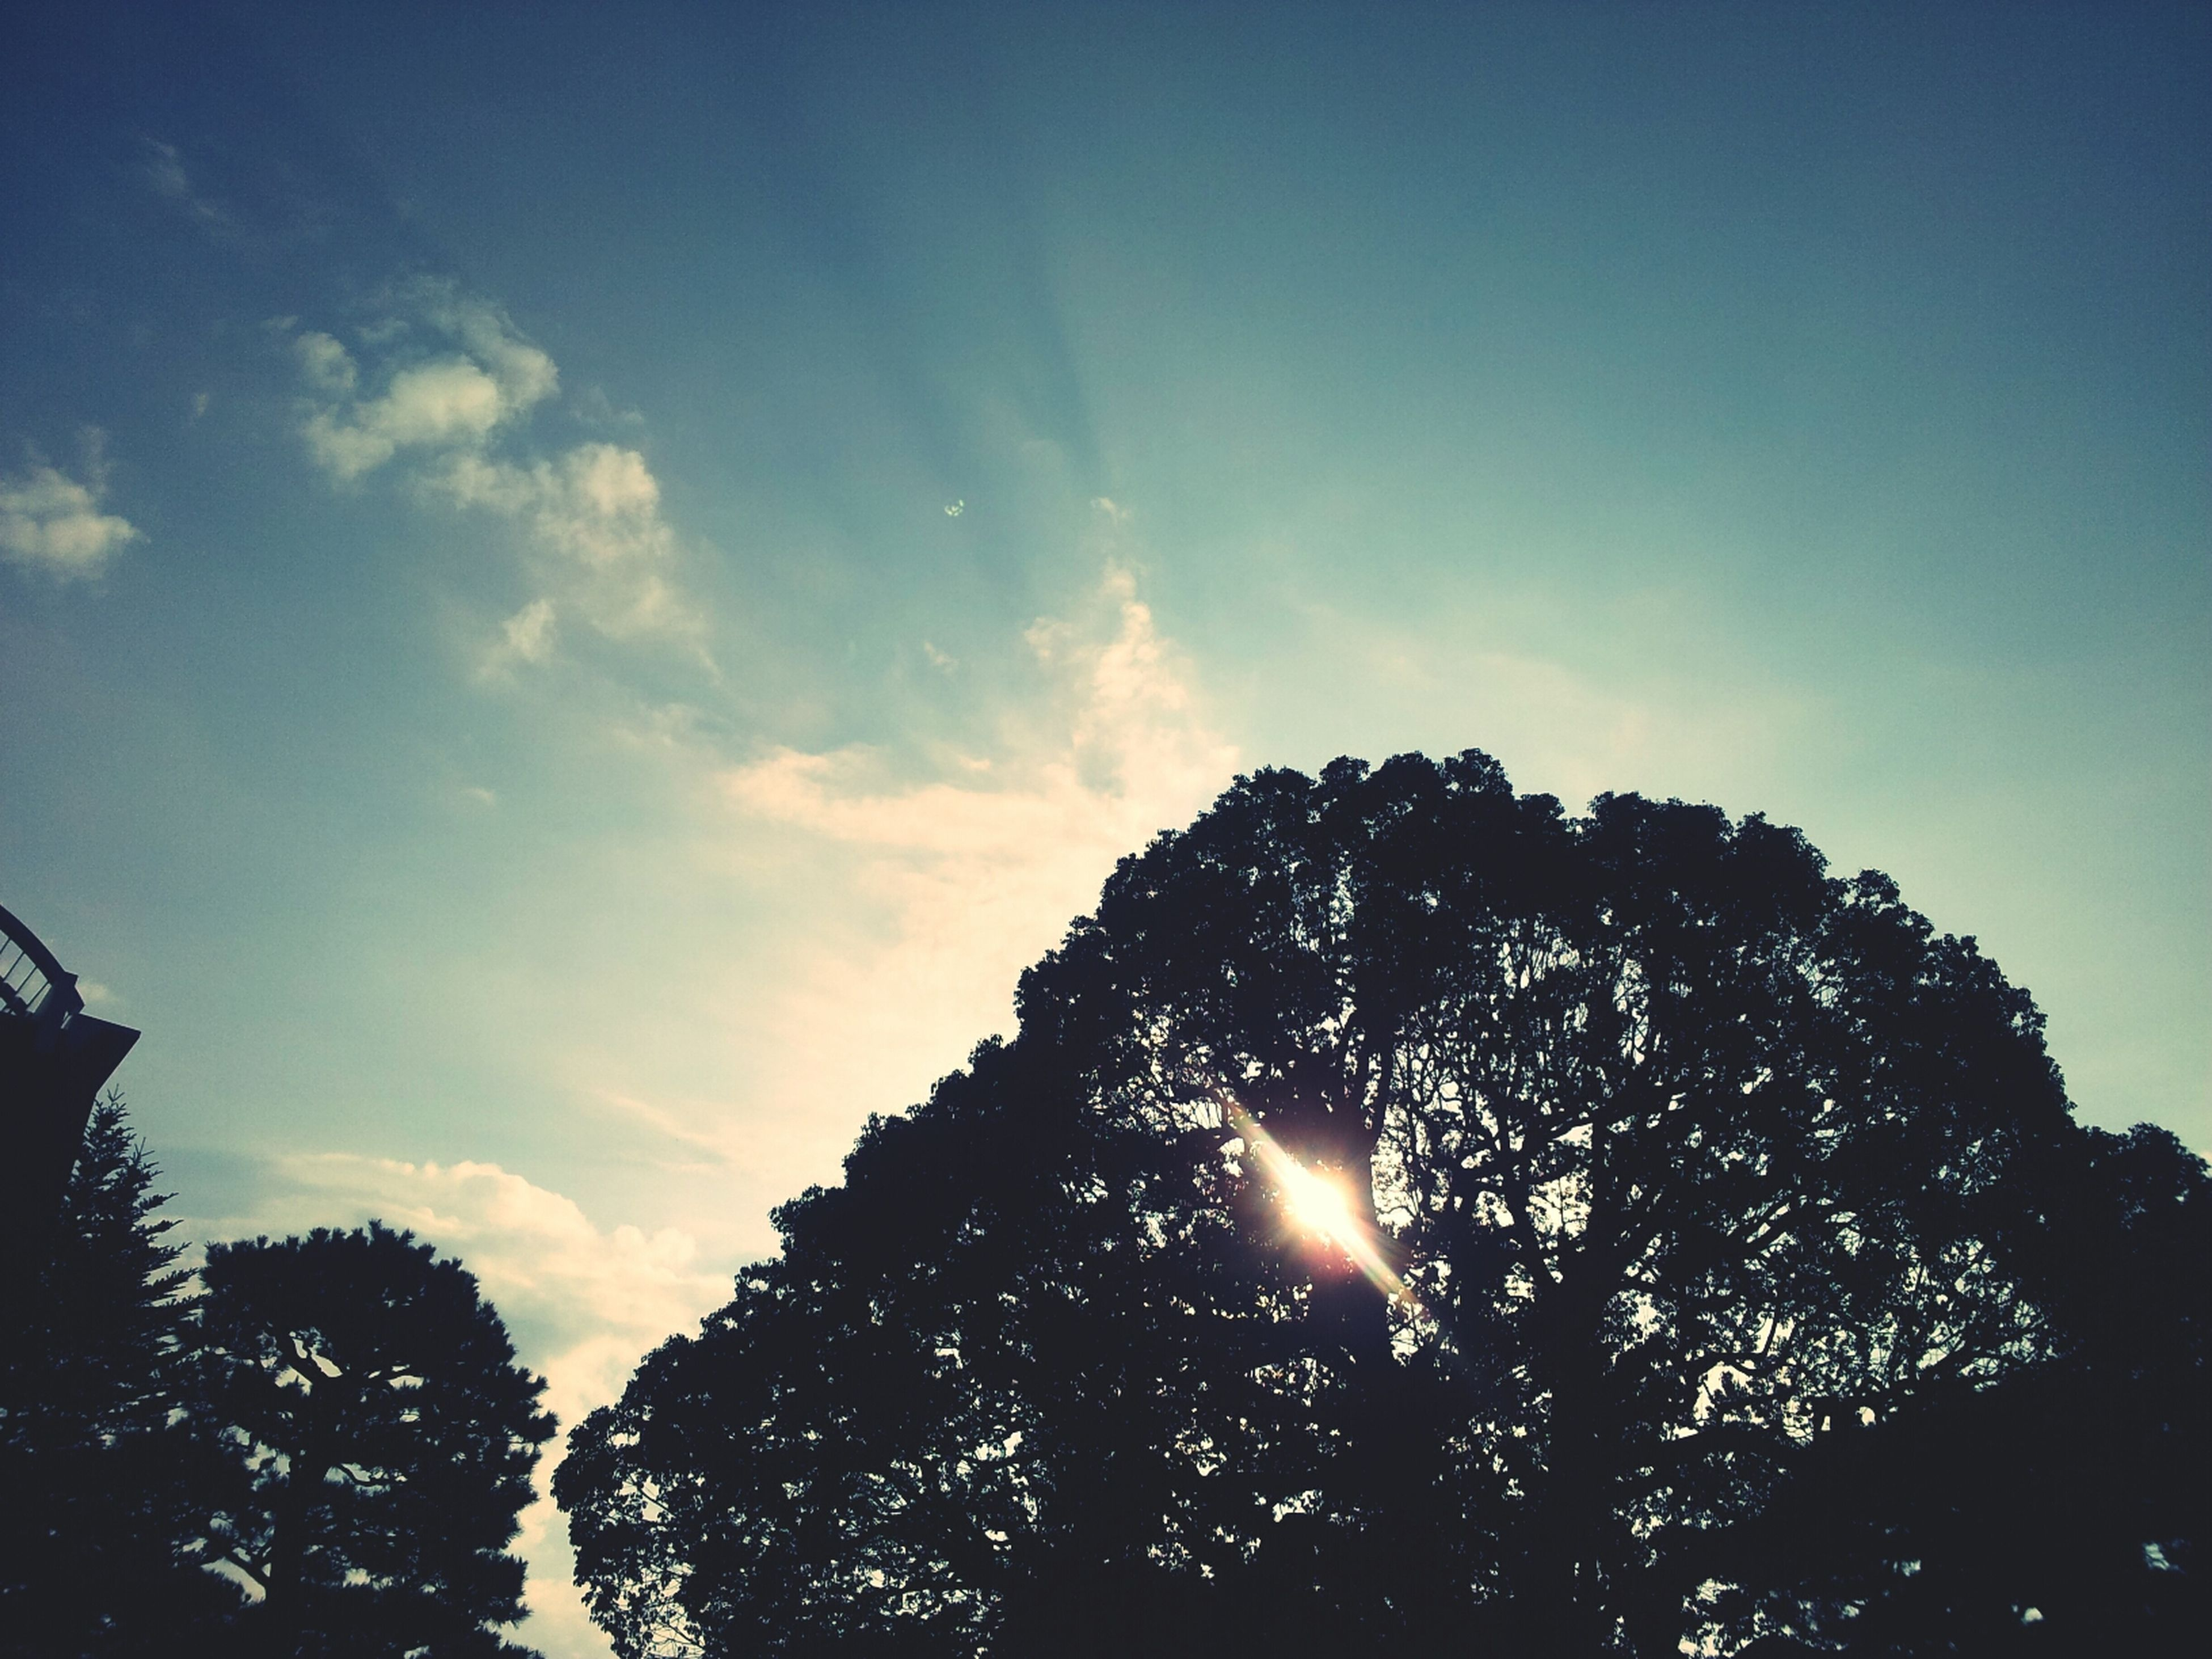 low angle view, silhouette, tree, sky, sun, nature, sunlight, growth, tranquility, sunbeam, beauty in nature, back lit, outdoors, lens flare, no people, high section, cloud - sky, scenics, clear sky, sunset